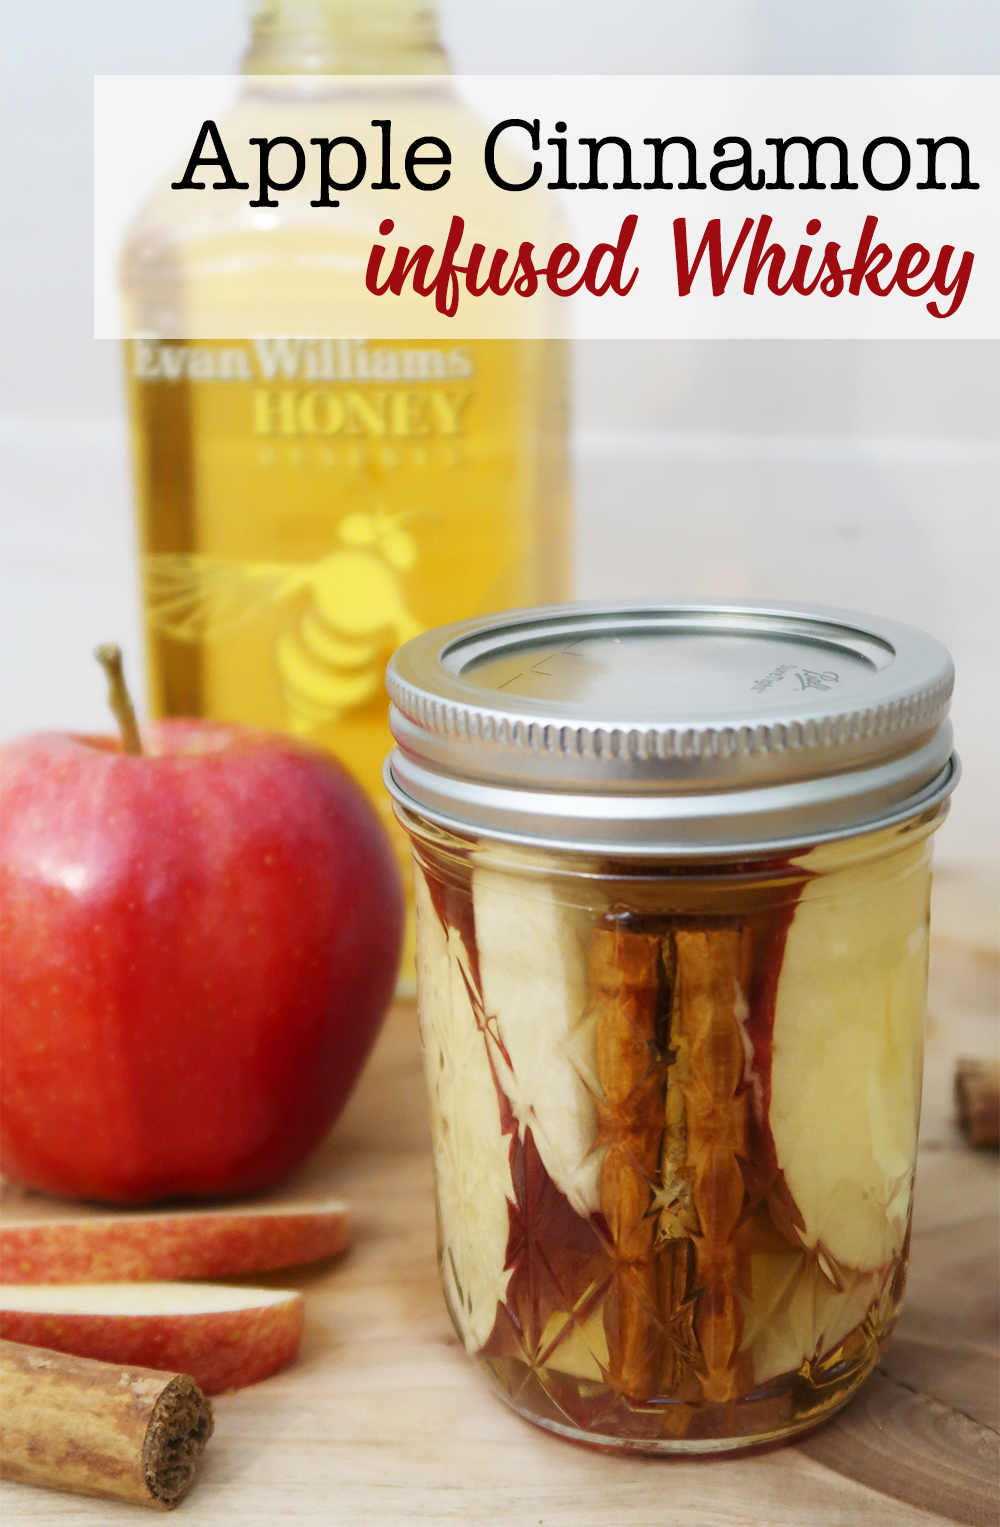 Apple Cinnamon infused whiskey recipe